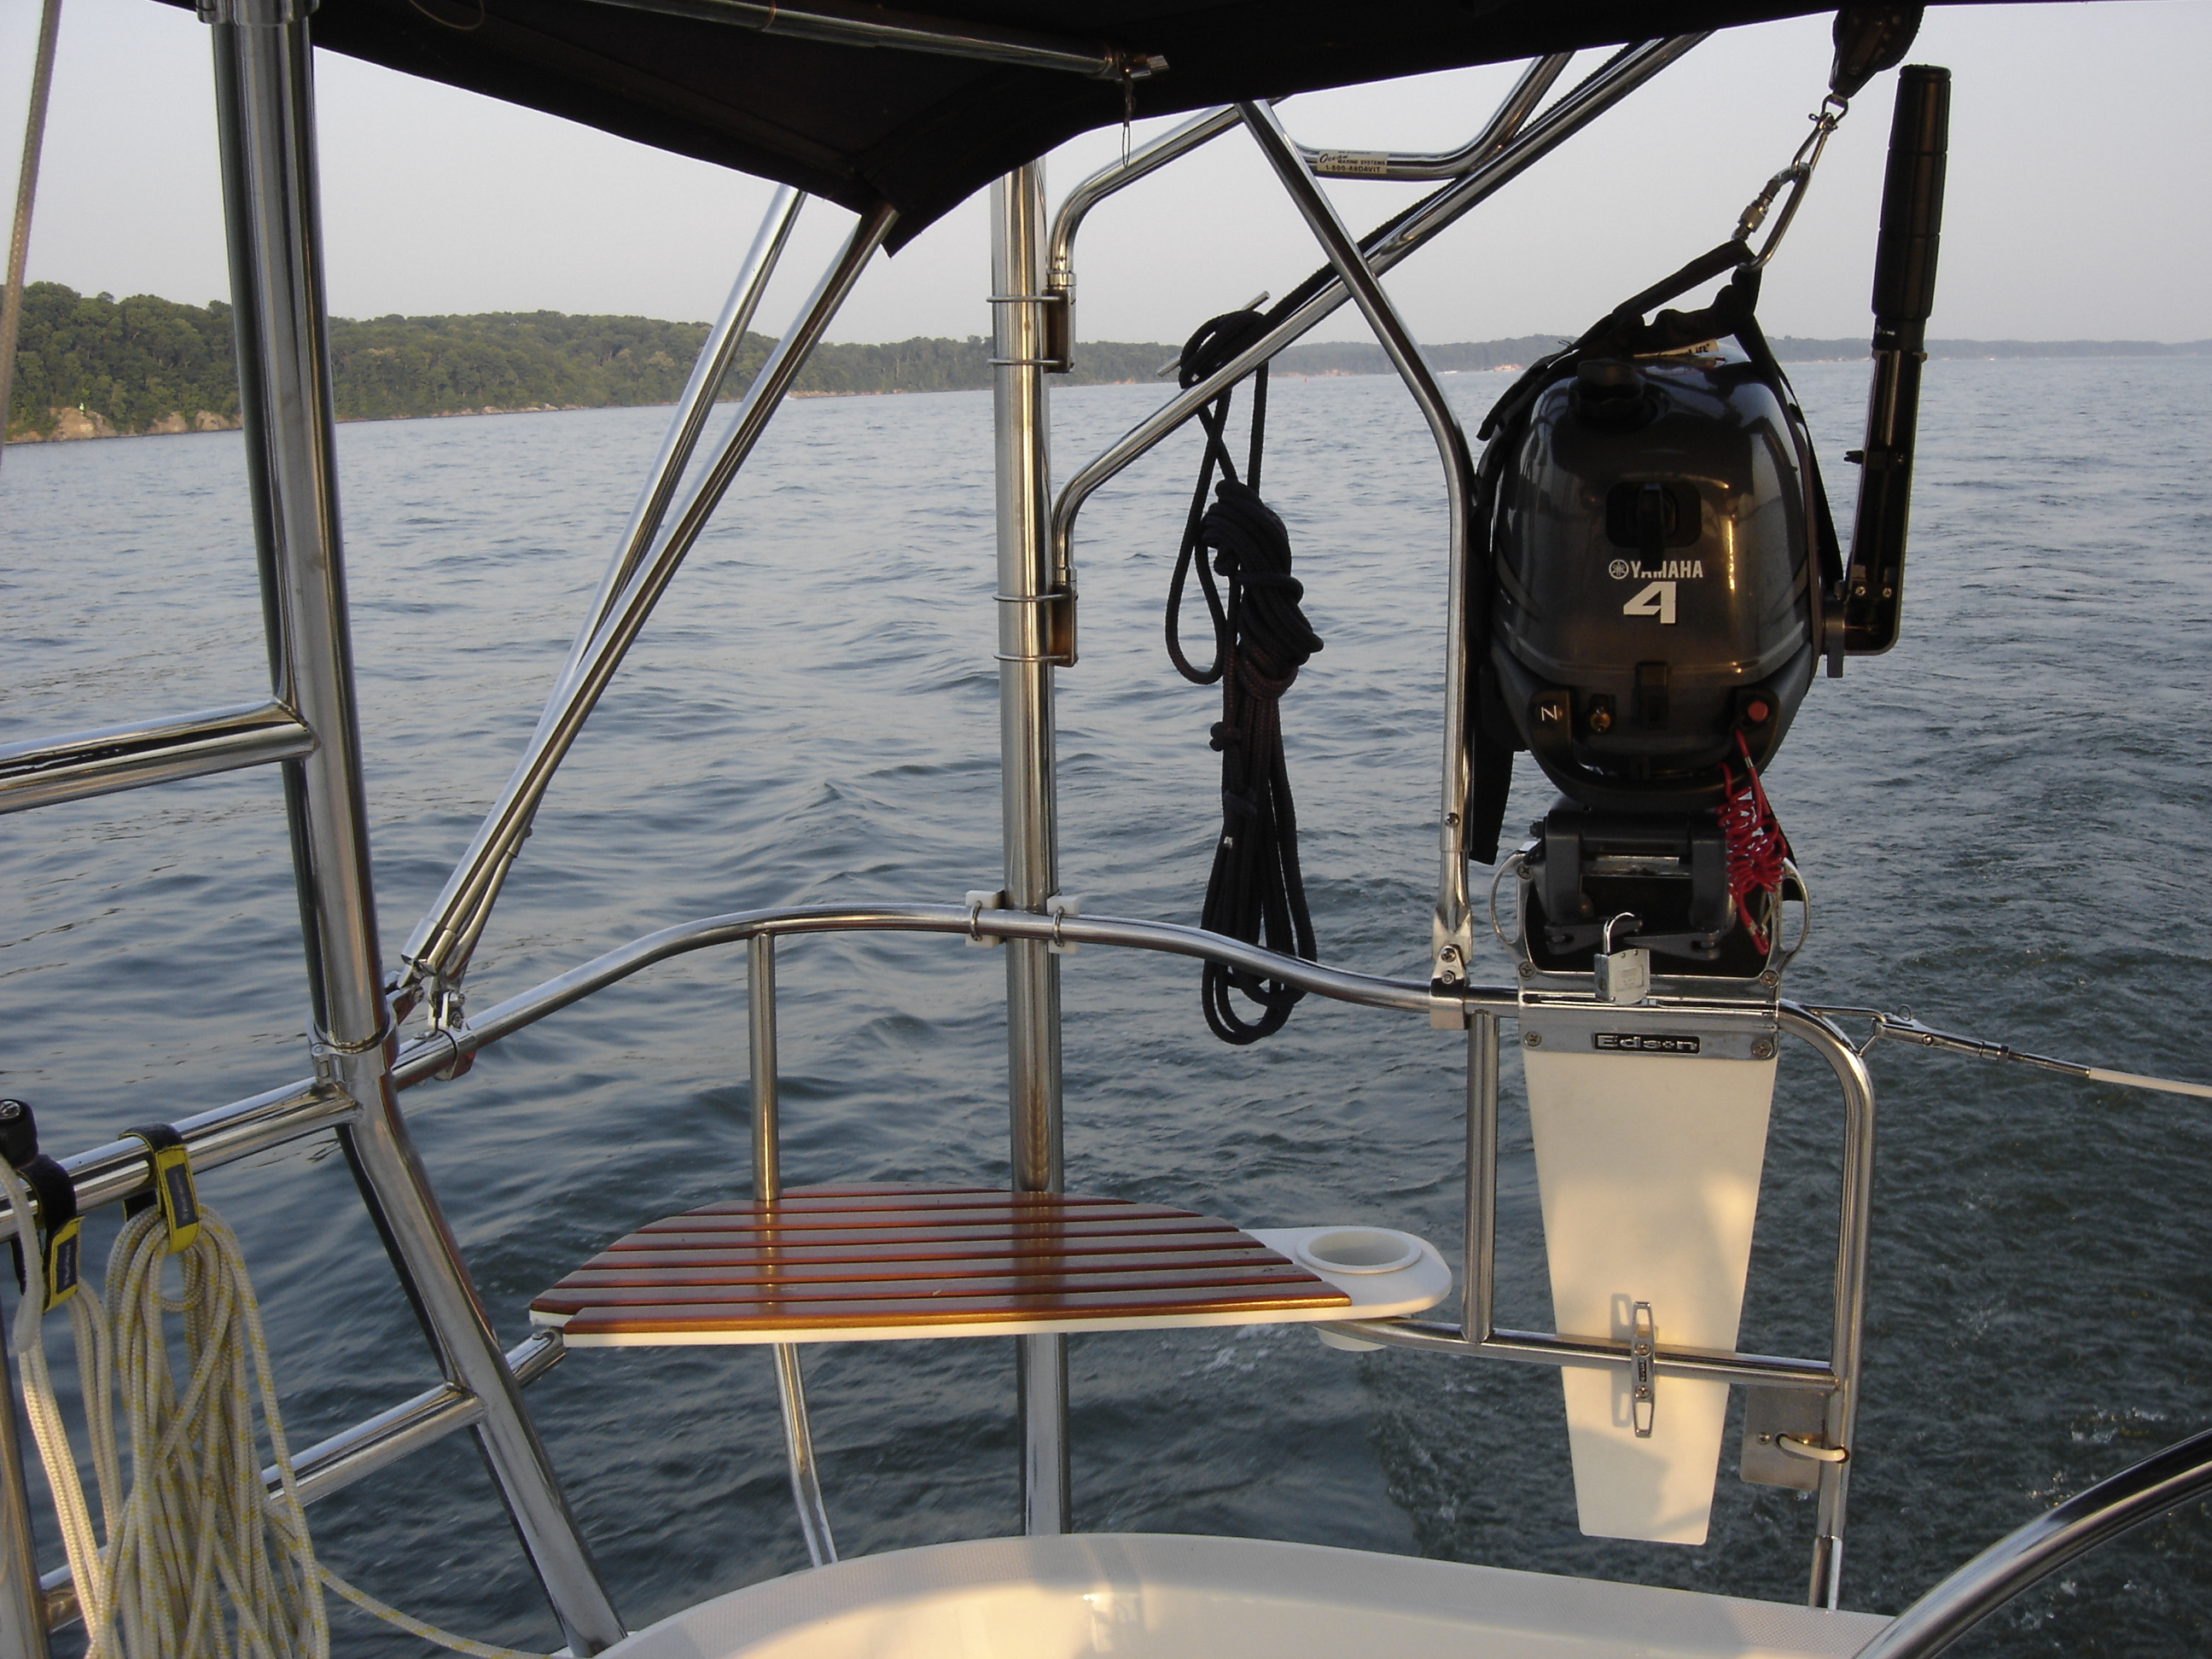 Rail Mount For Outboard Motor Page 2 Sailboatowners